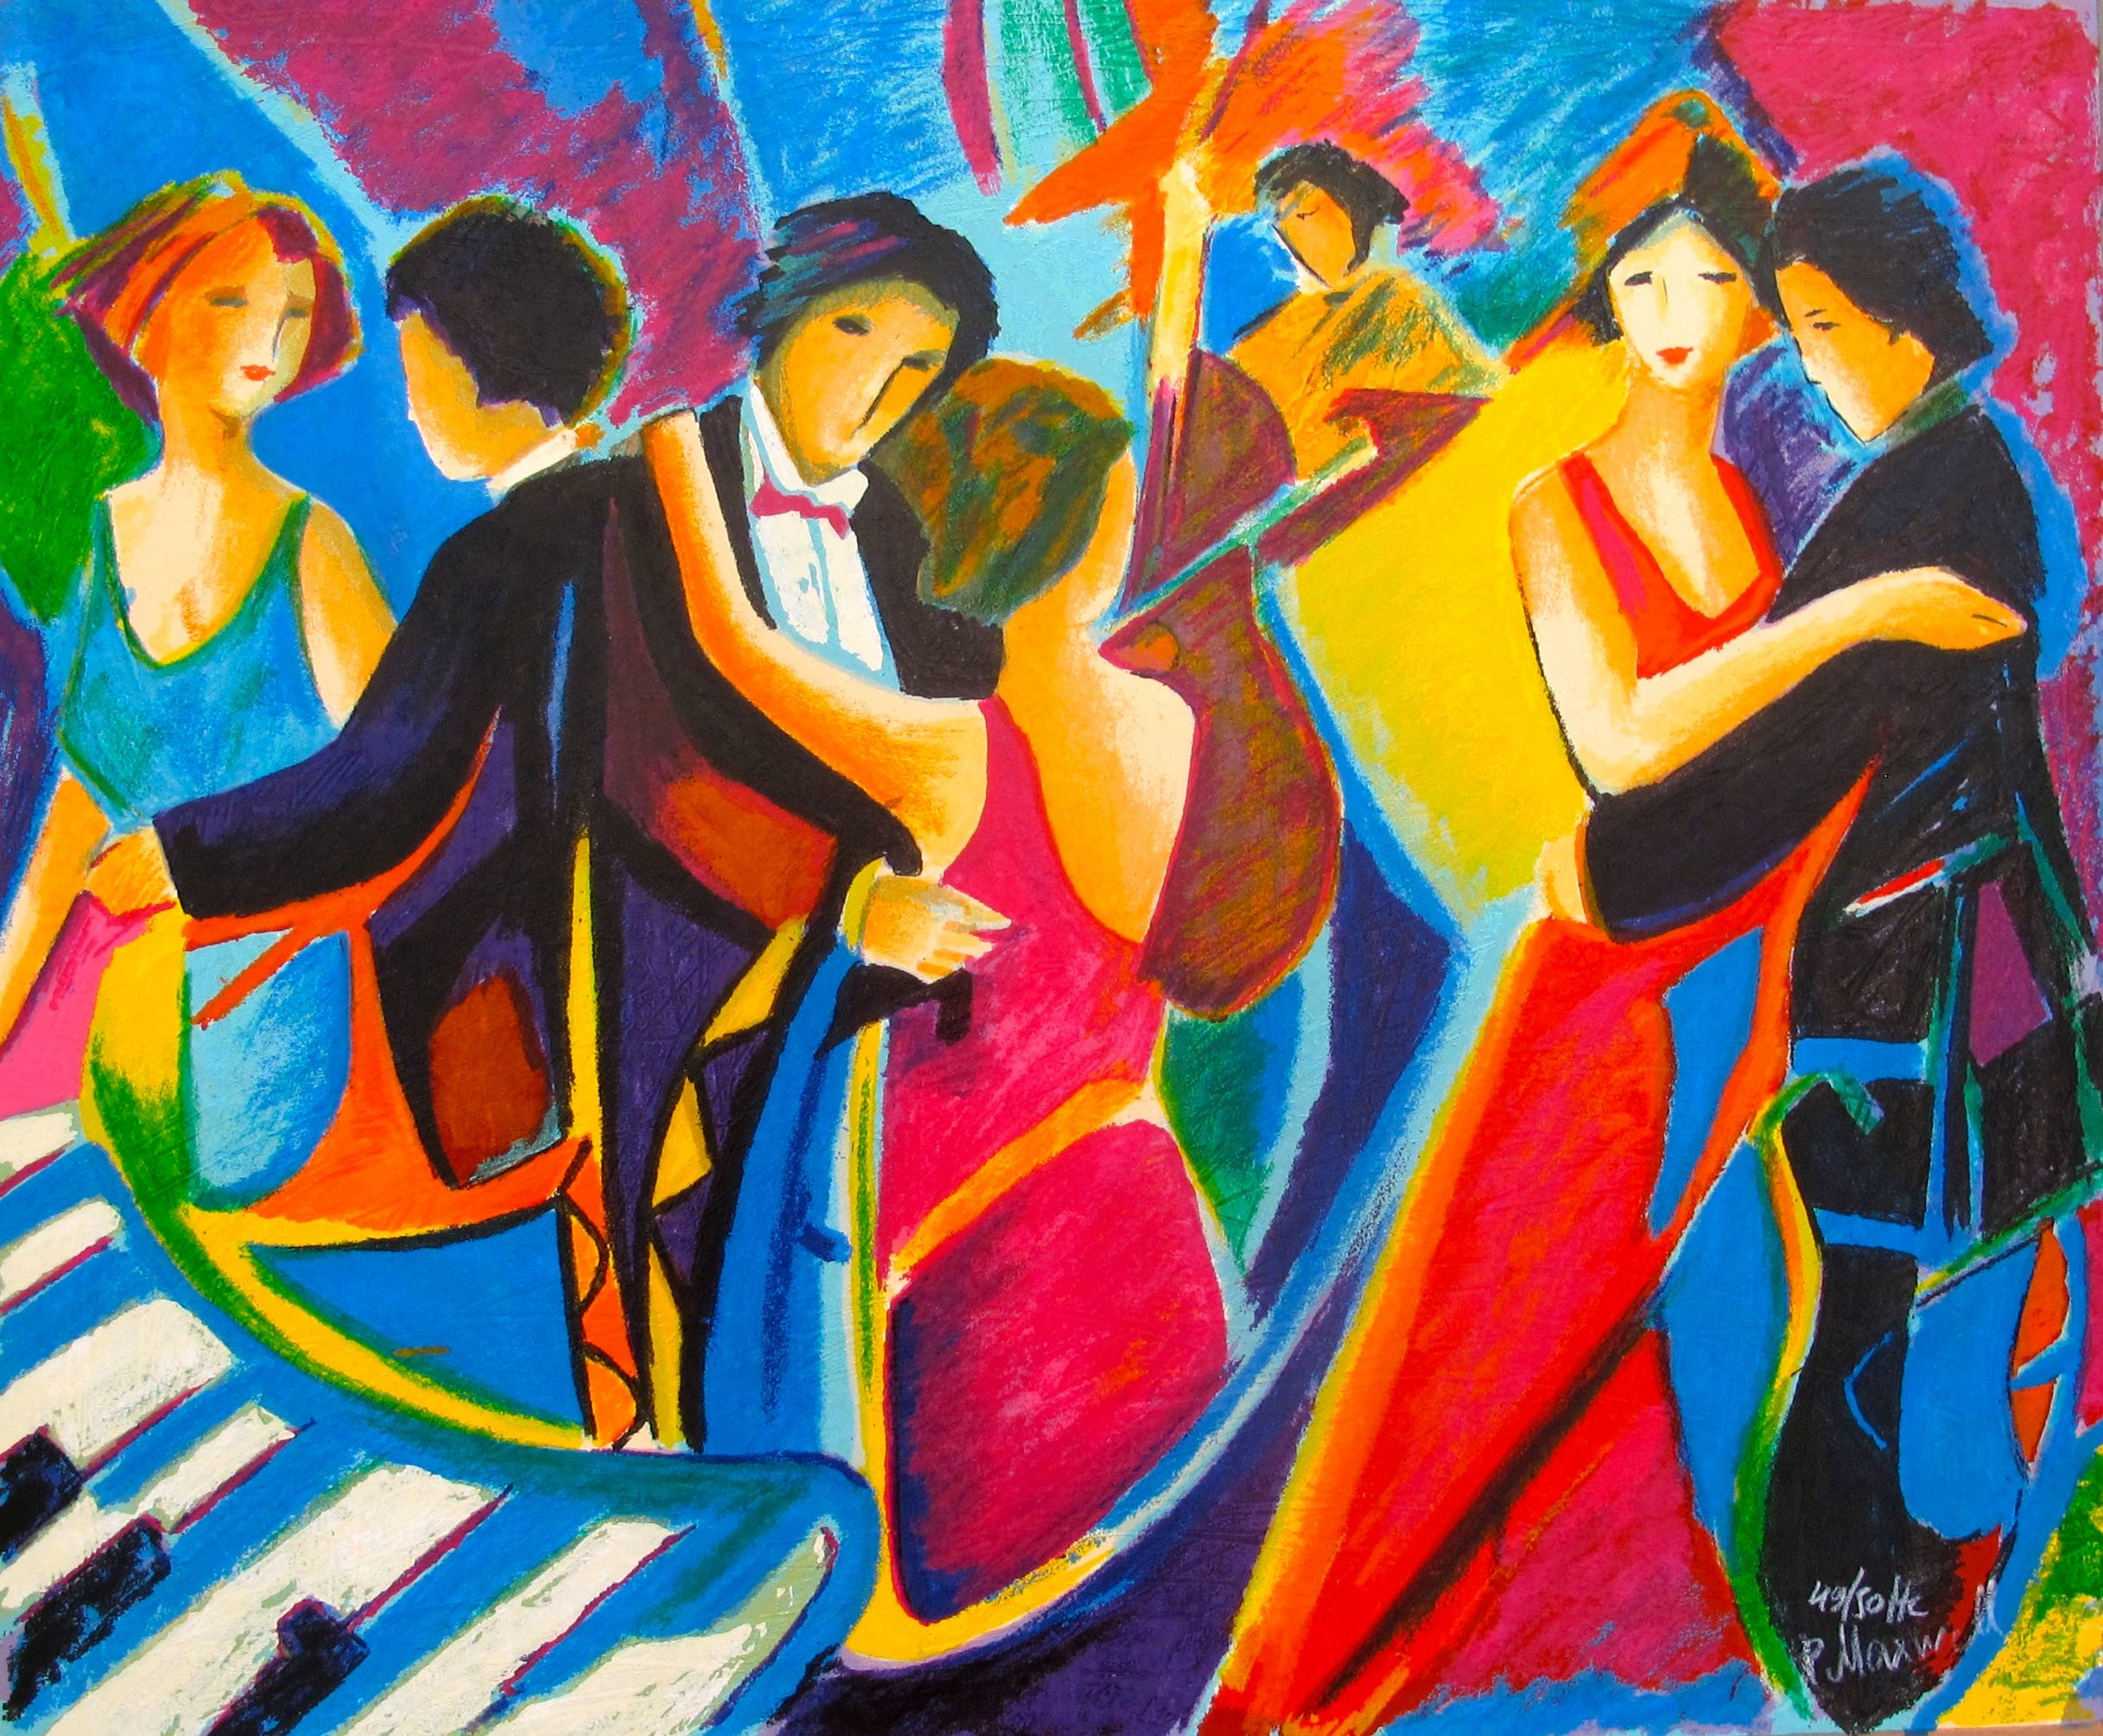 Philip Maxwell TANGO CLUB Hand Signed Limited Edition Serigraph